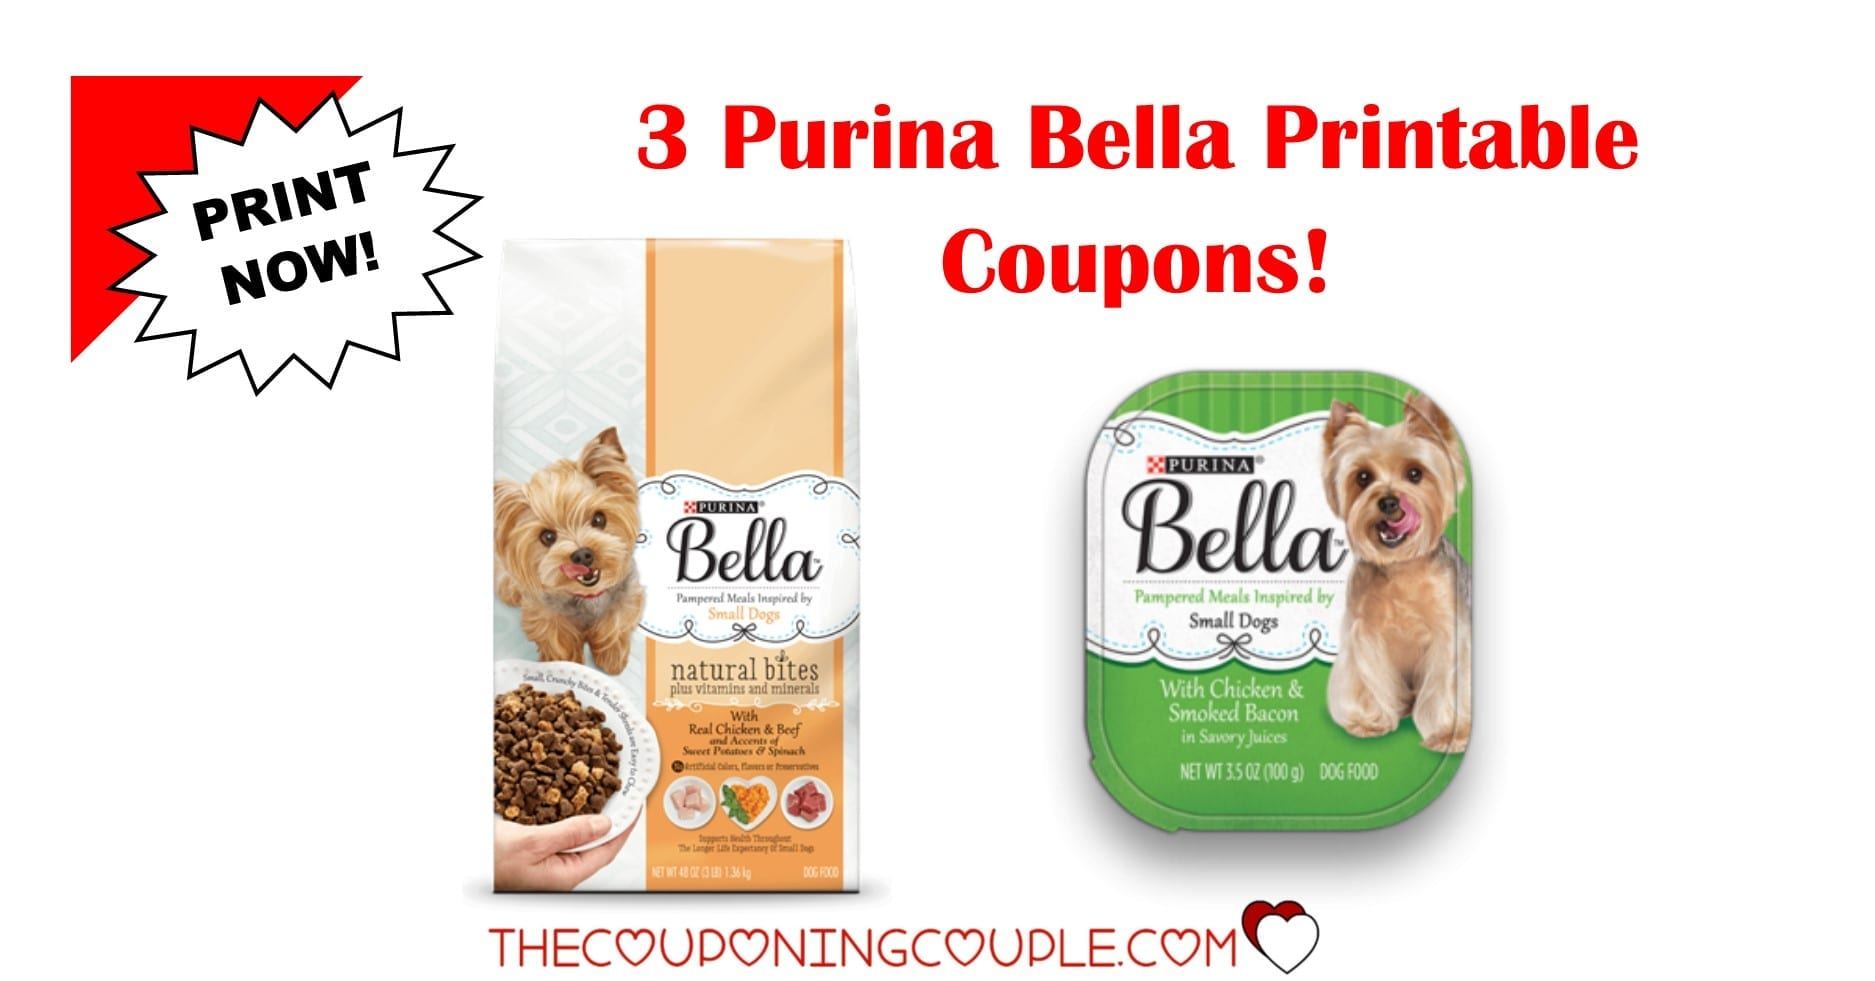 photo relating to Printable Pet Coupons referred to as 3 Refreshing Purina Bella Puppy Foodstuff Printable Coupon codes ~ PRINT By now!